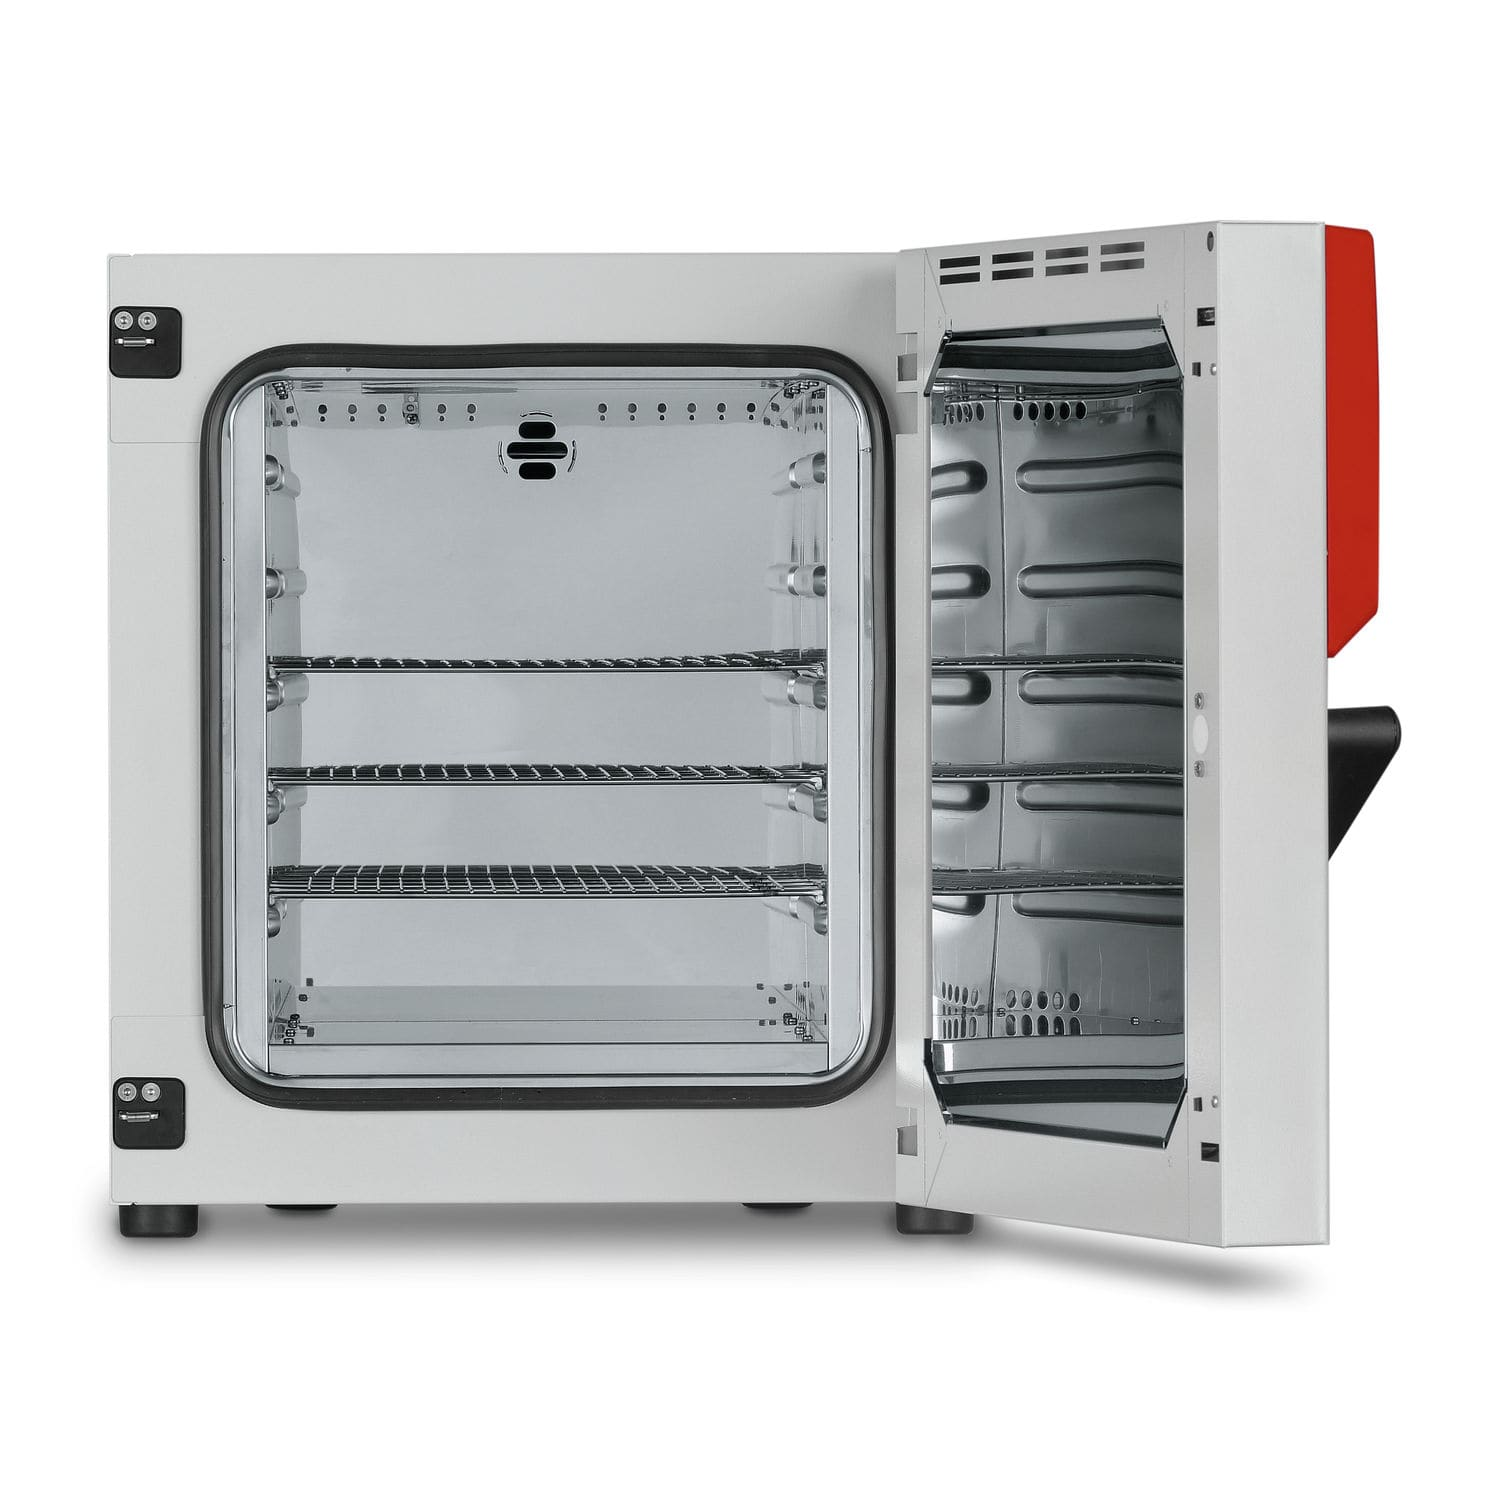 Drying oven - ED 56 - BINDER - heating / thermal / sterilization